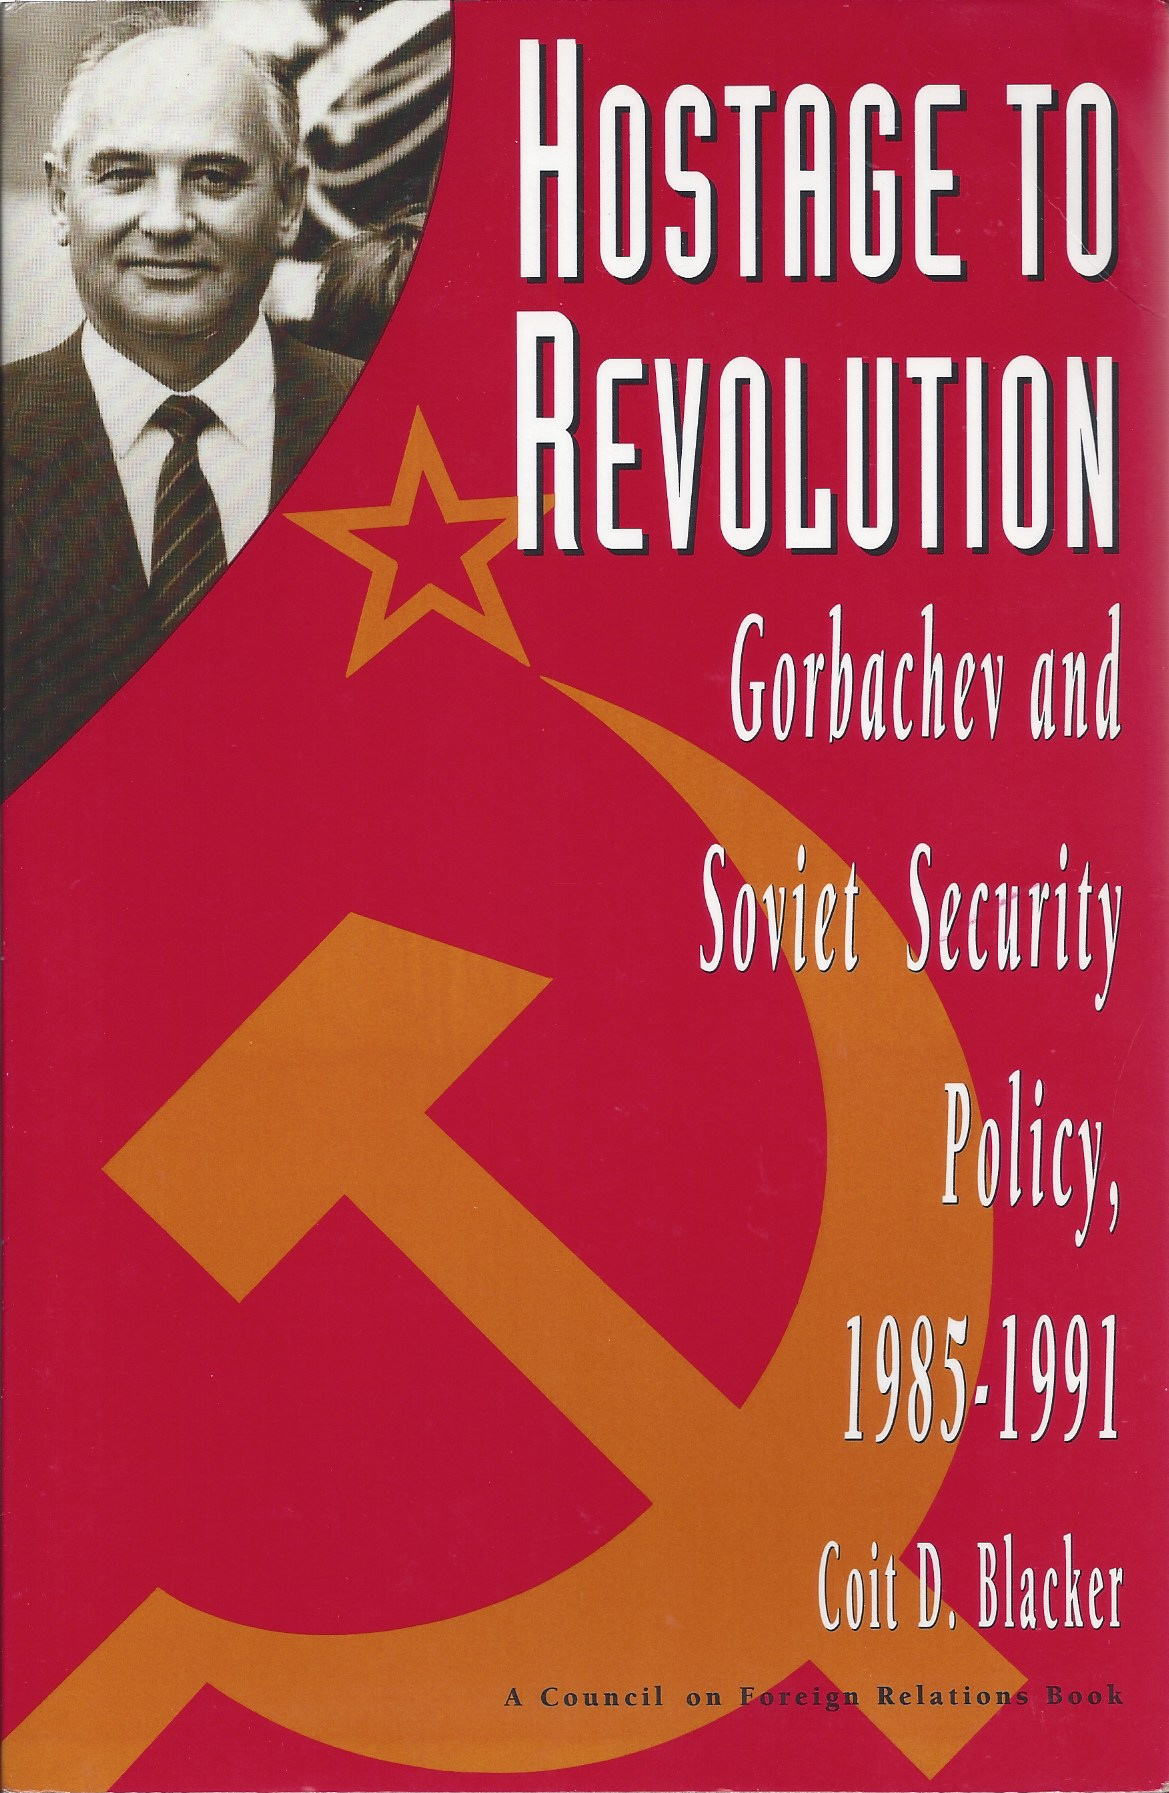 Image for Hostage to Revolution Gorbachev and Soviet Security Policy, 1985-1991